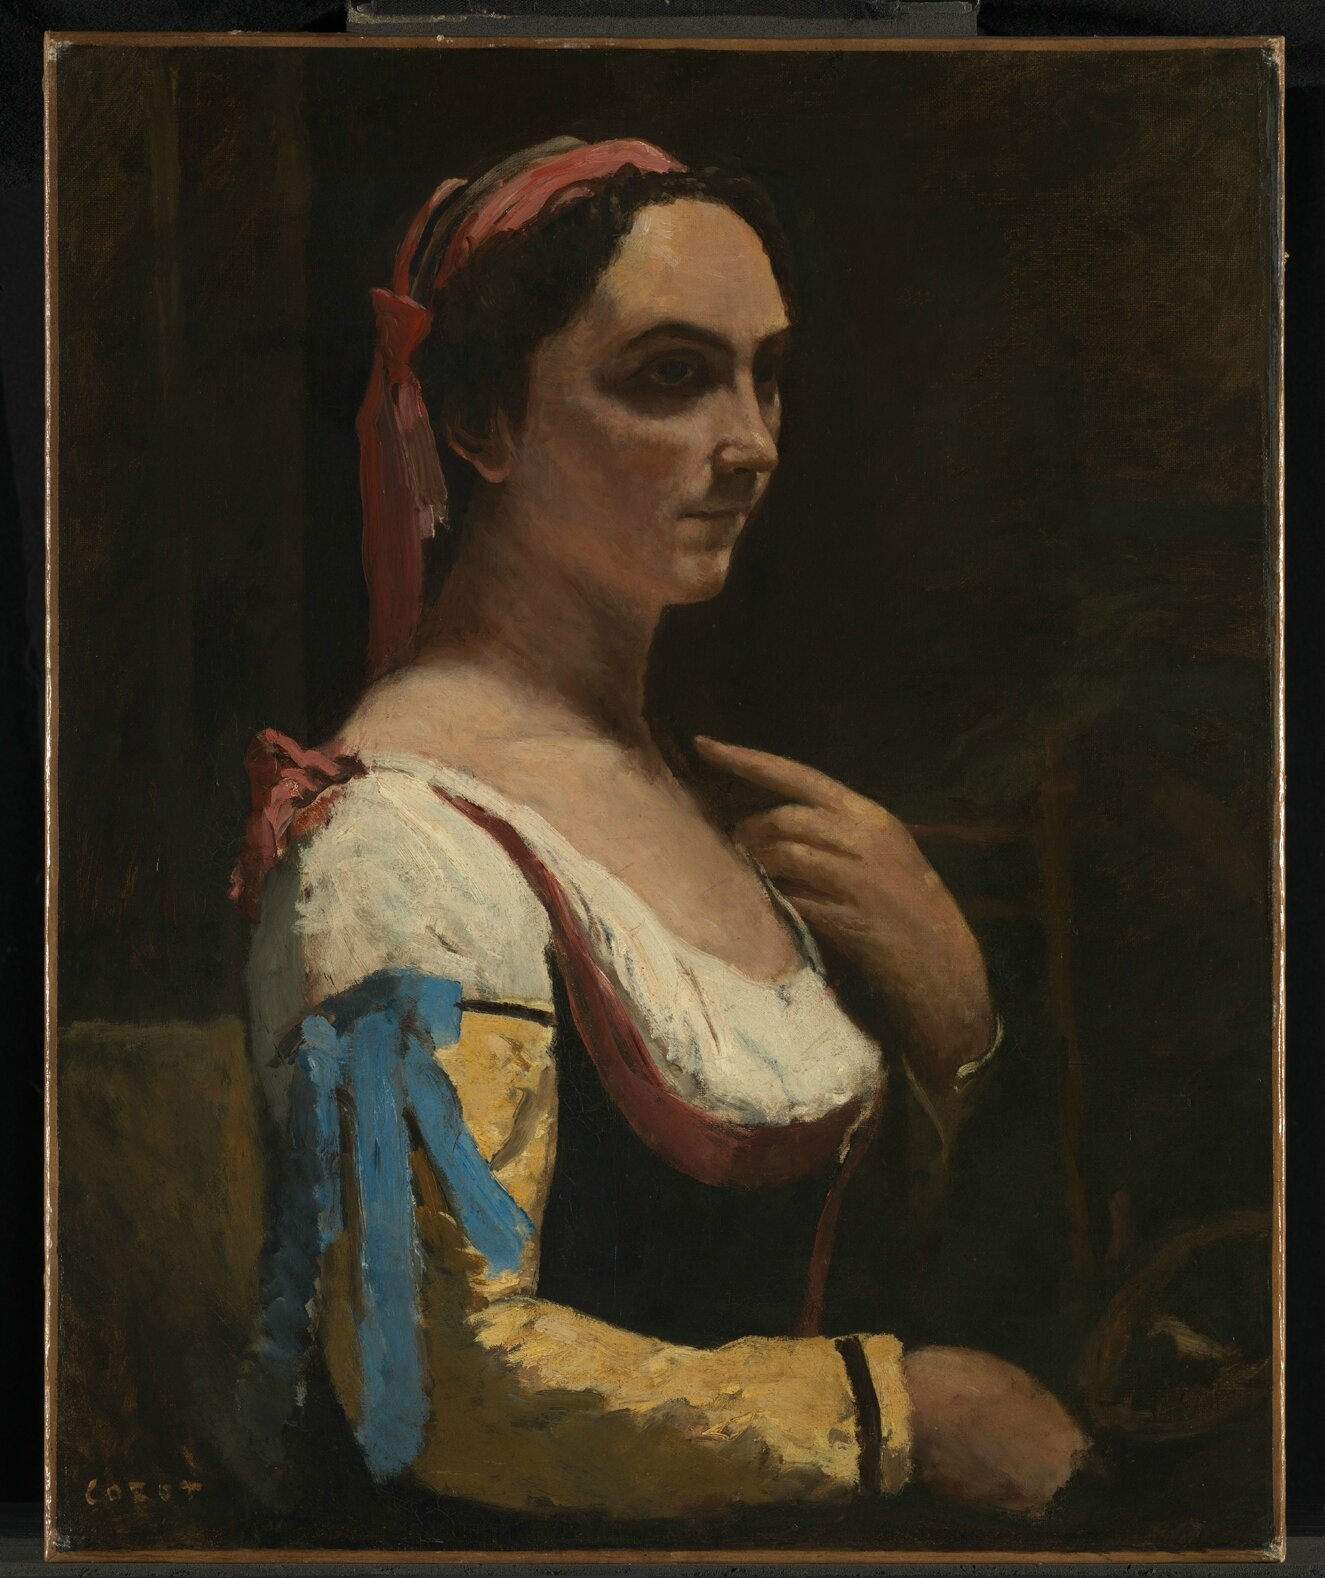 The National Gallery explores great paintings from a unique perspective